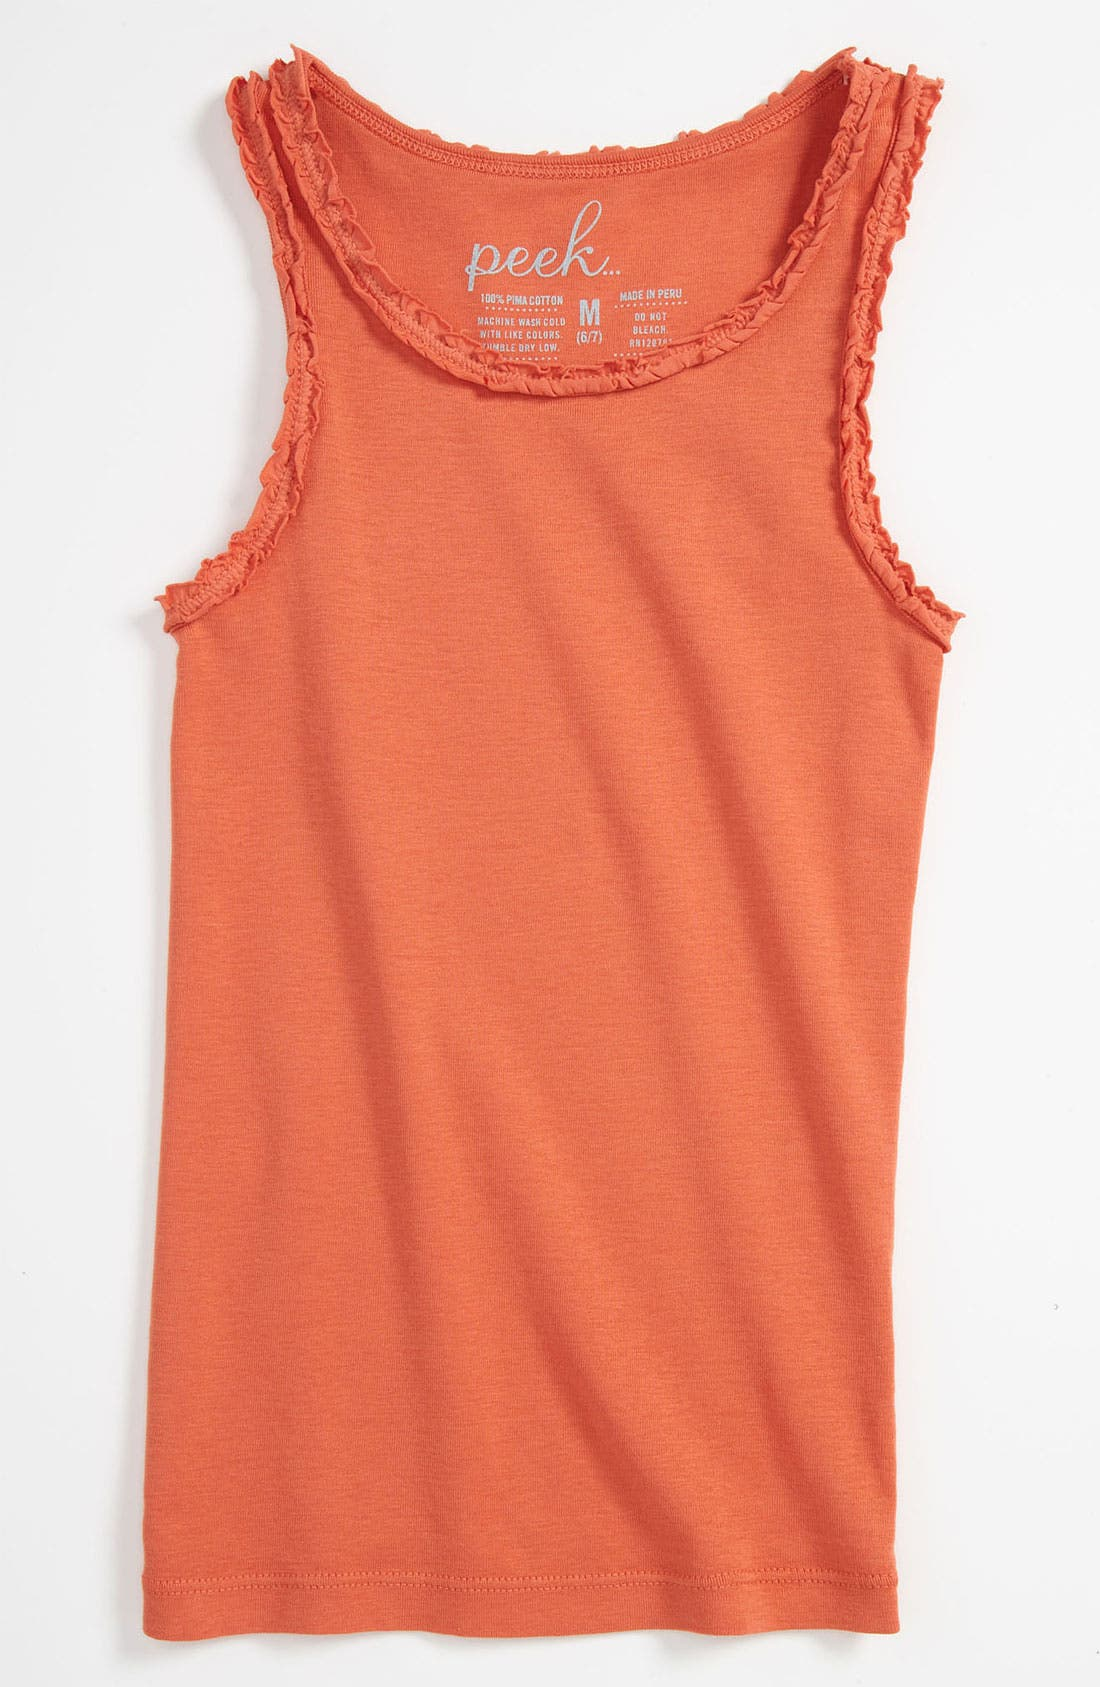 Alternate Image 1 Selected - Peek 'Maribel' Tank Top (Big Girls)